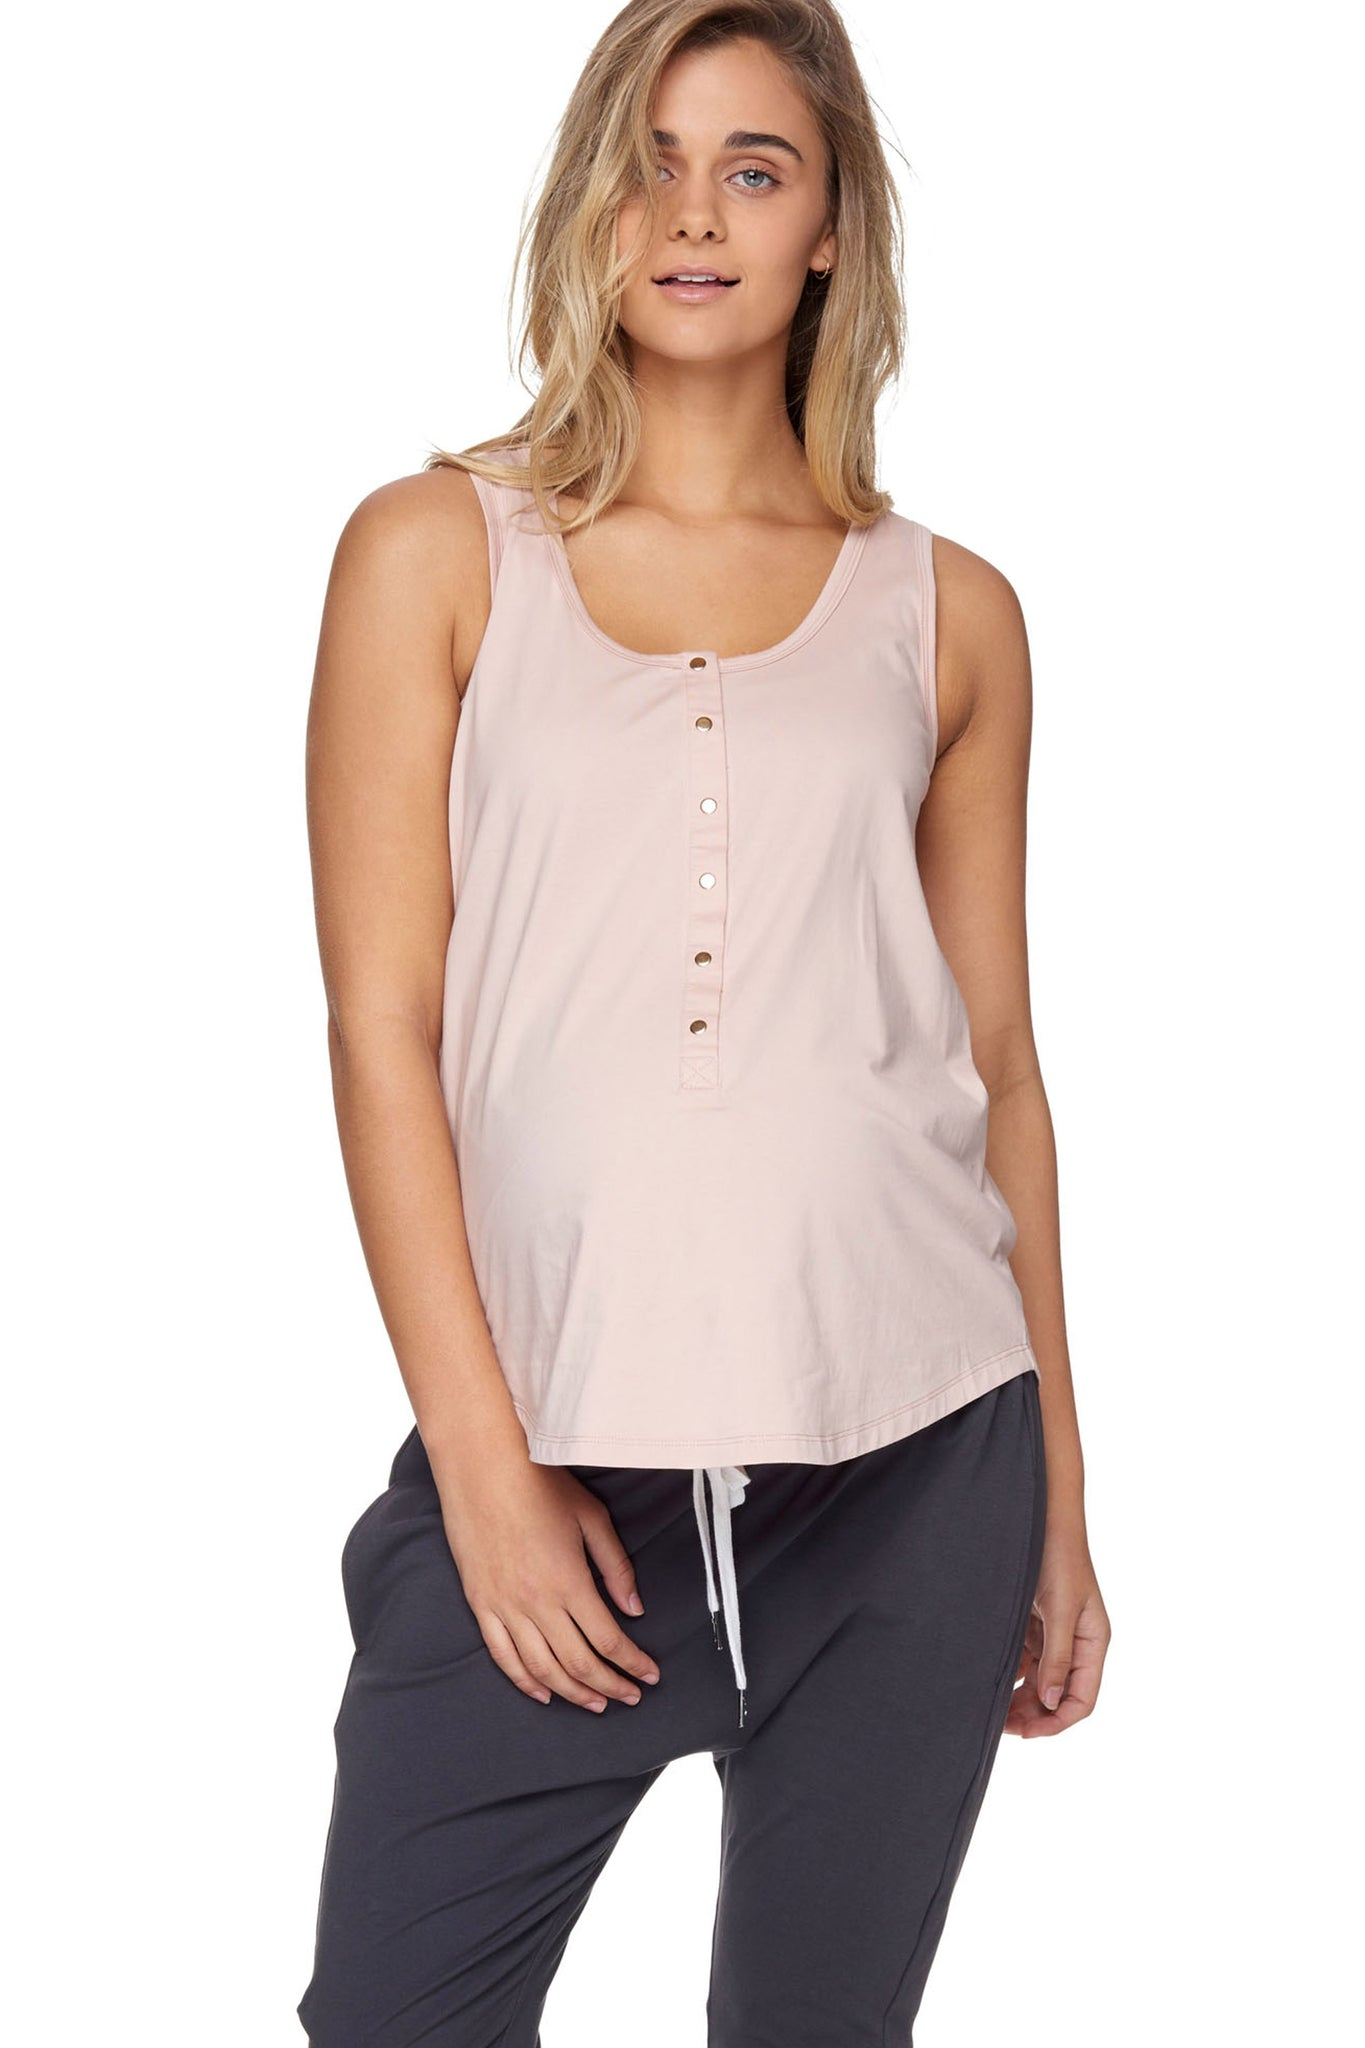 Maternity + Nursing Tank Top - Pink 1